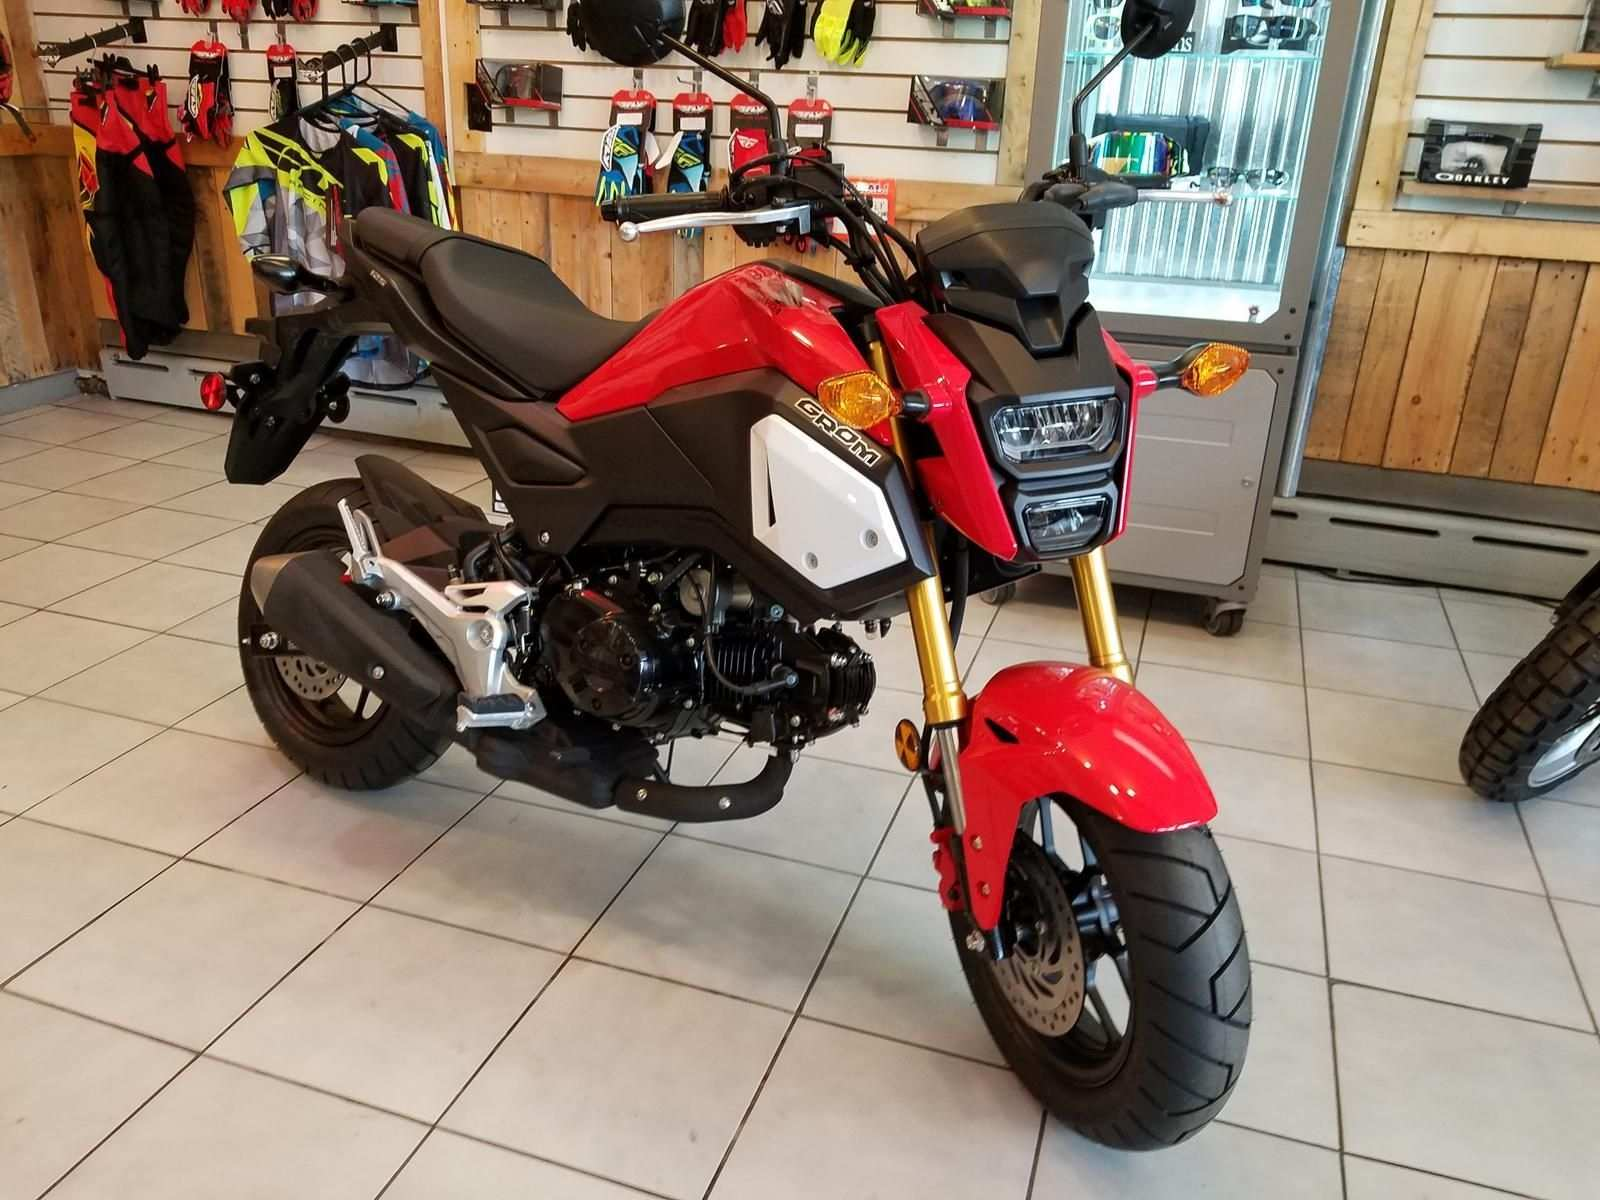 34 Concept of Best Honda Grom 2019 Release Date Spy Shoot Images for Best Honda Grom 2019 Release Date Spy Shoot